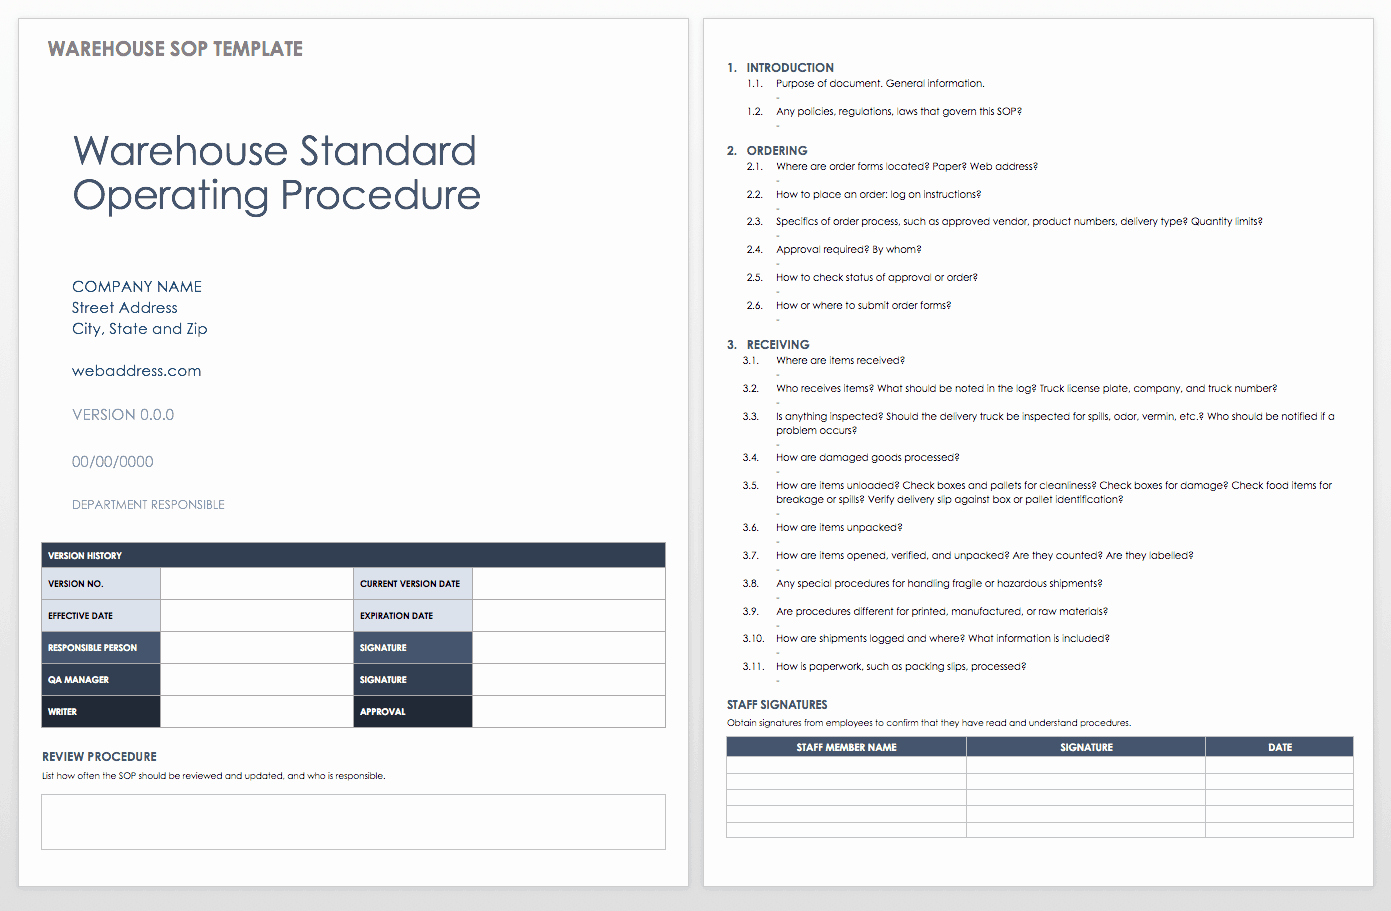 Standard Operating Procedures Template Best Of Standard Operating Procedures Templates